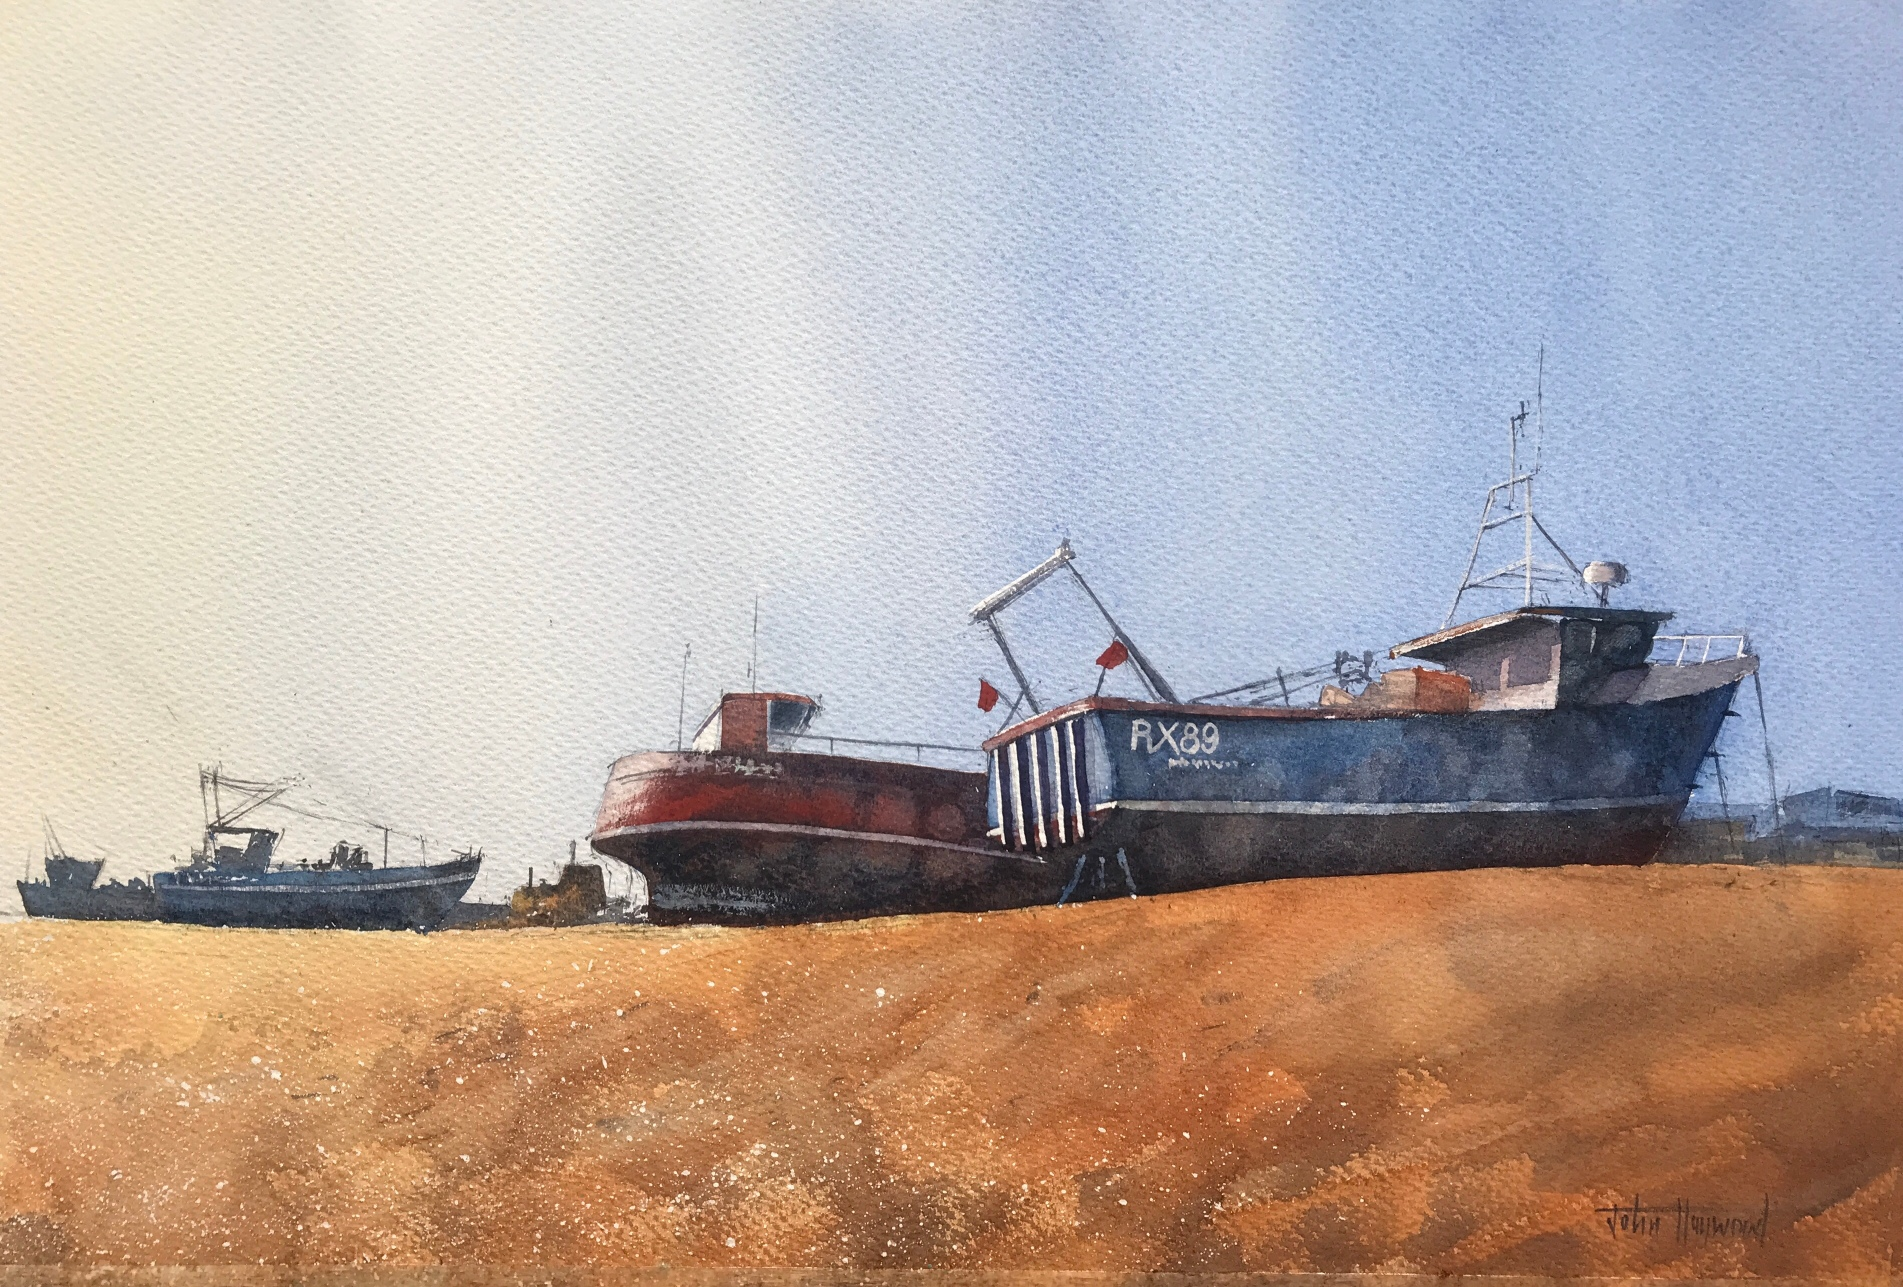 Boats at rest, Hastings, a watercolour painting by John Haywood